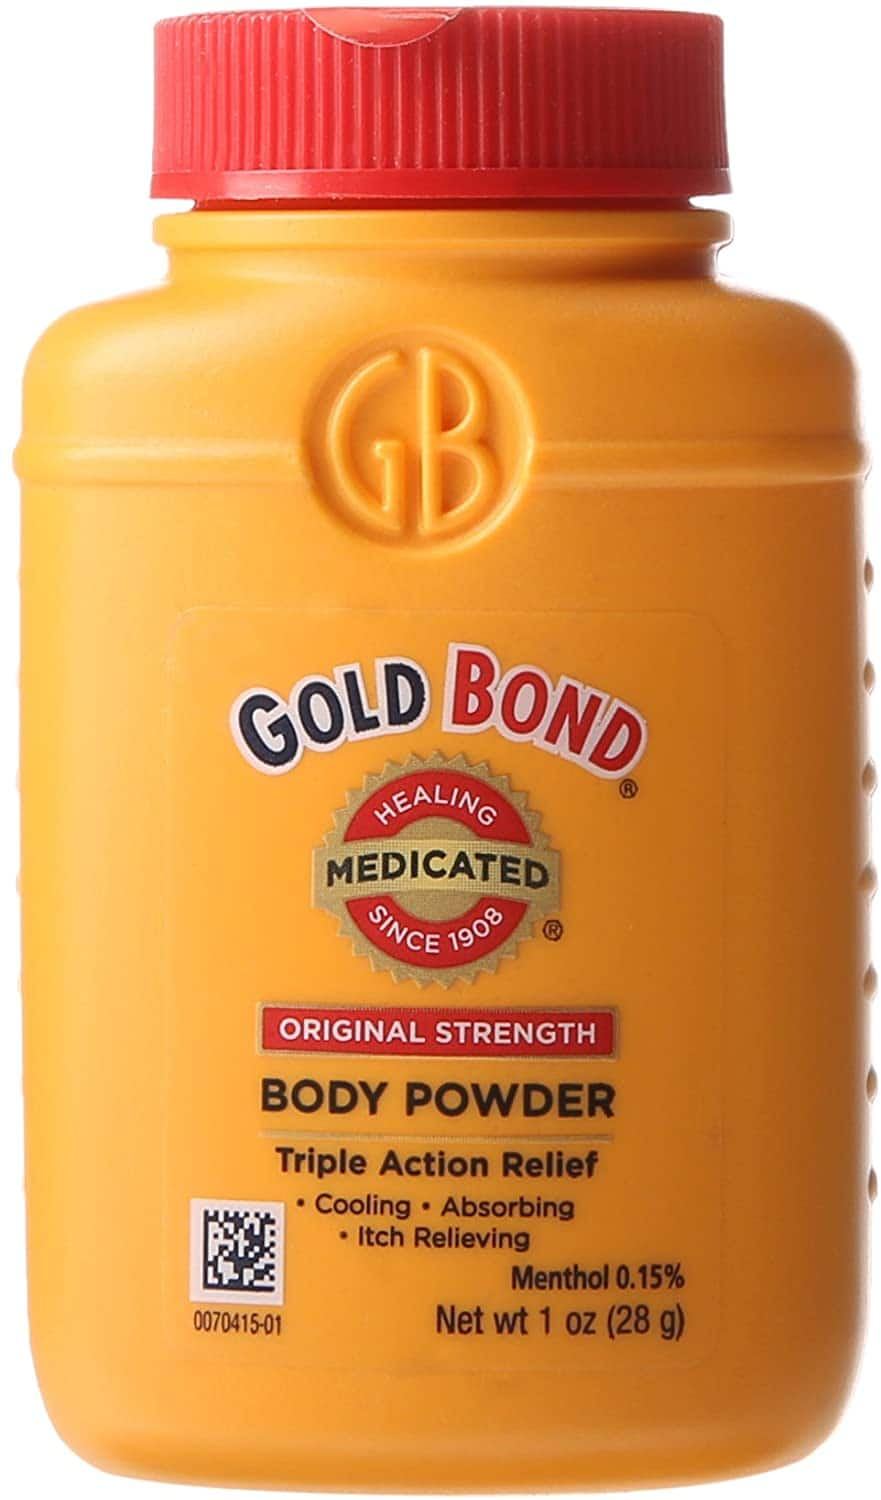 Gold Bond Original Strength Medicated Body Powder 1-Ounce $0.92 or less - FS w/ S&S